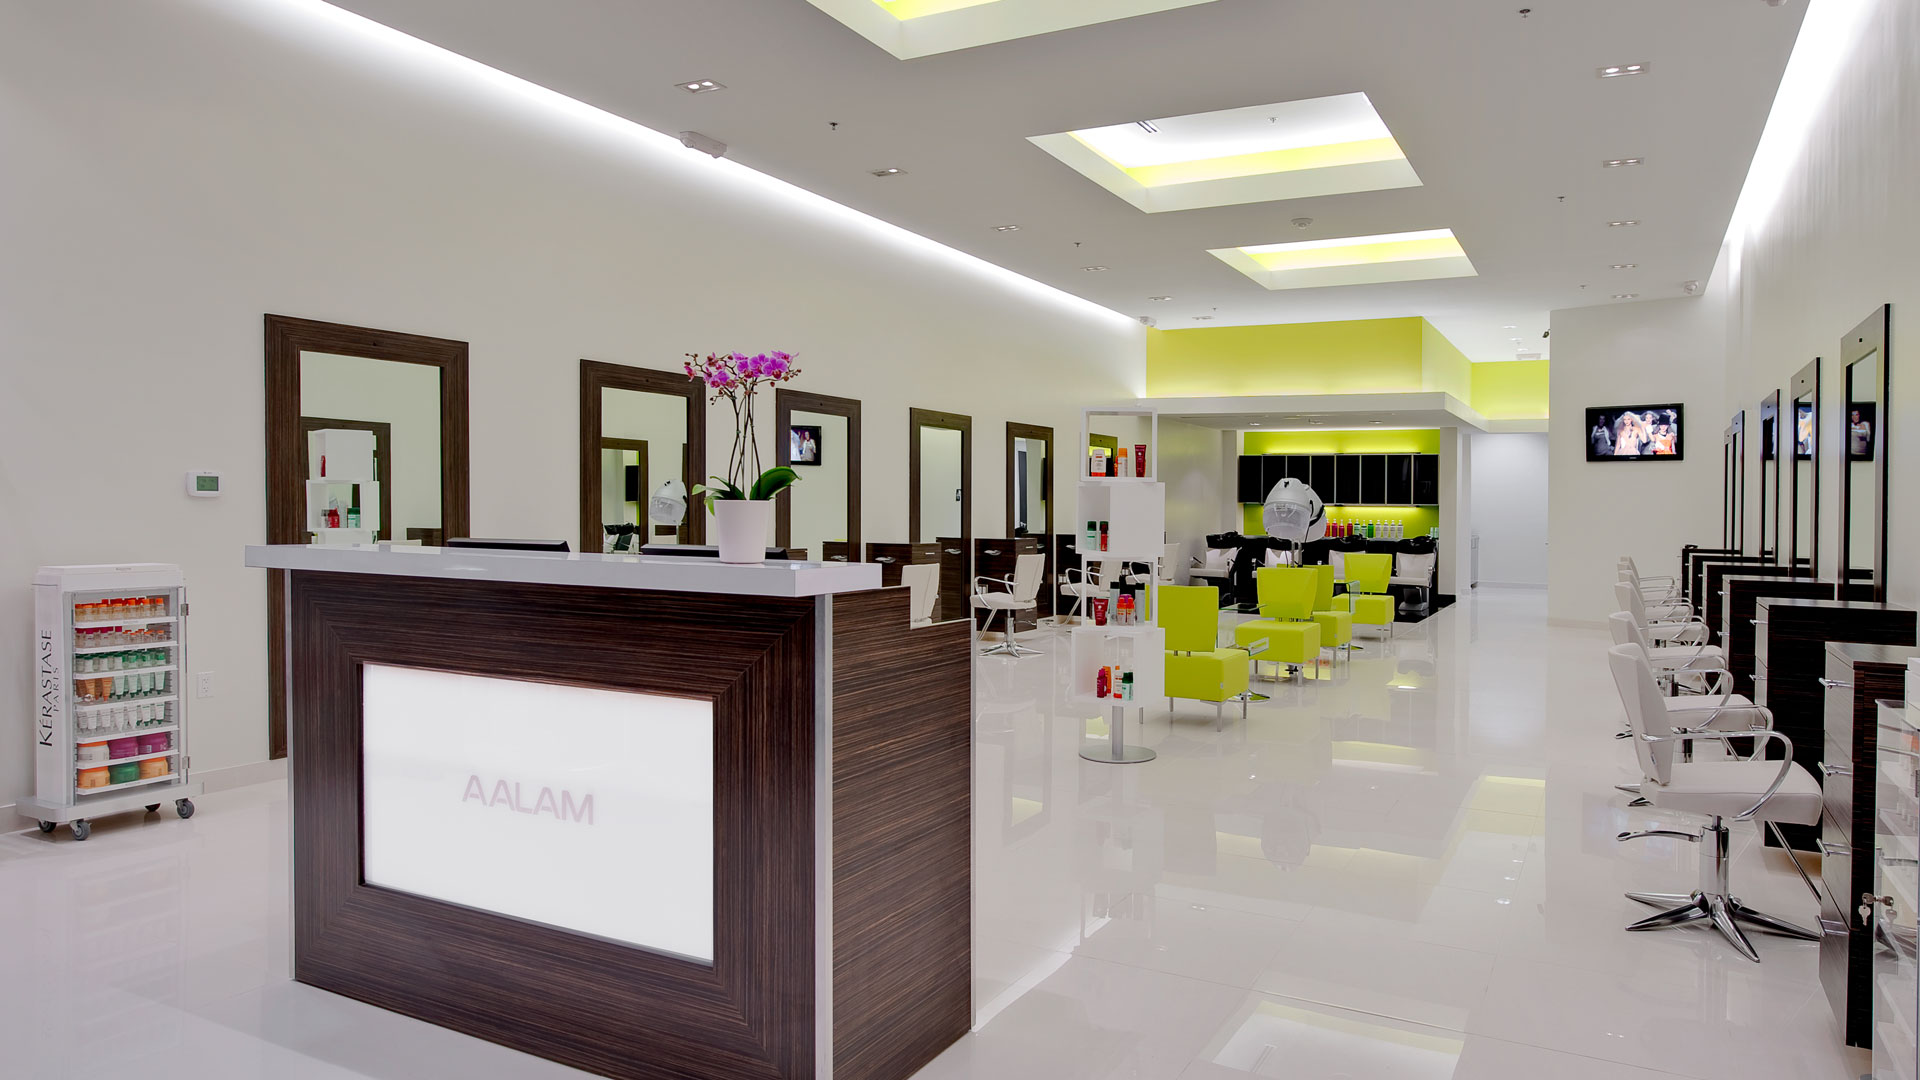 AALAM The Salon Plano TX Best Hair salon LUXBAR Blow Dry Bar Plano Top Salons for Men Women Upscale Plano High End Makeup Bar Haircut Balayage Highlights Kerasatase Oribe Shu Uemura North Dallas e